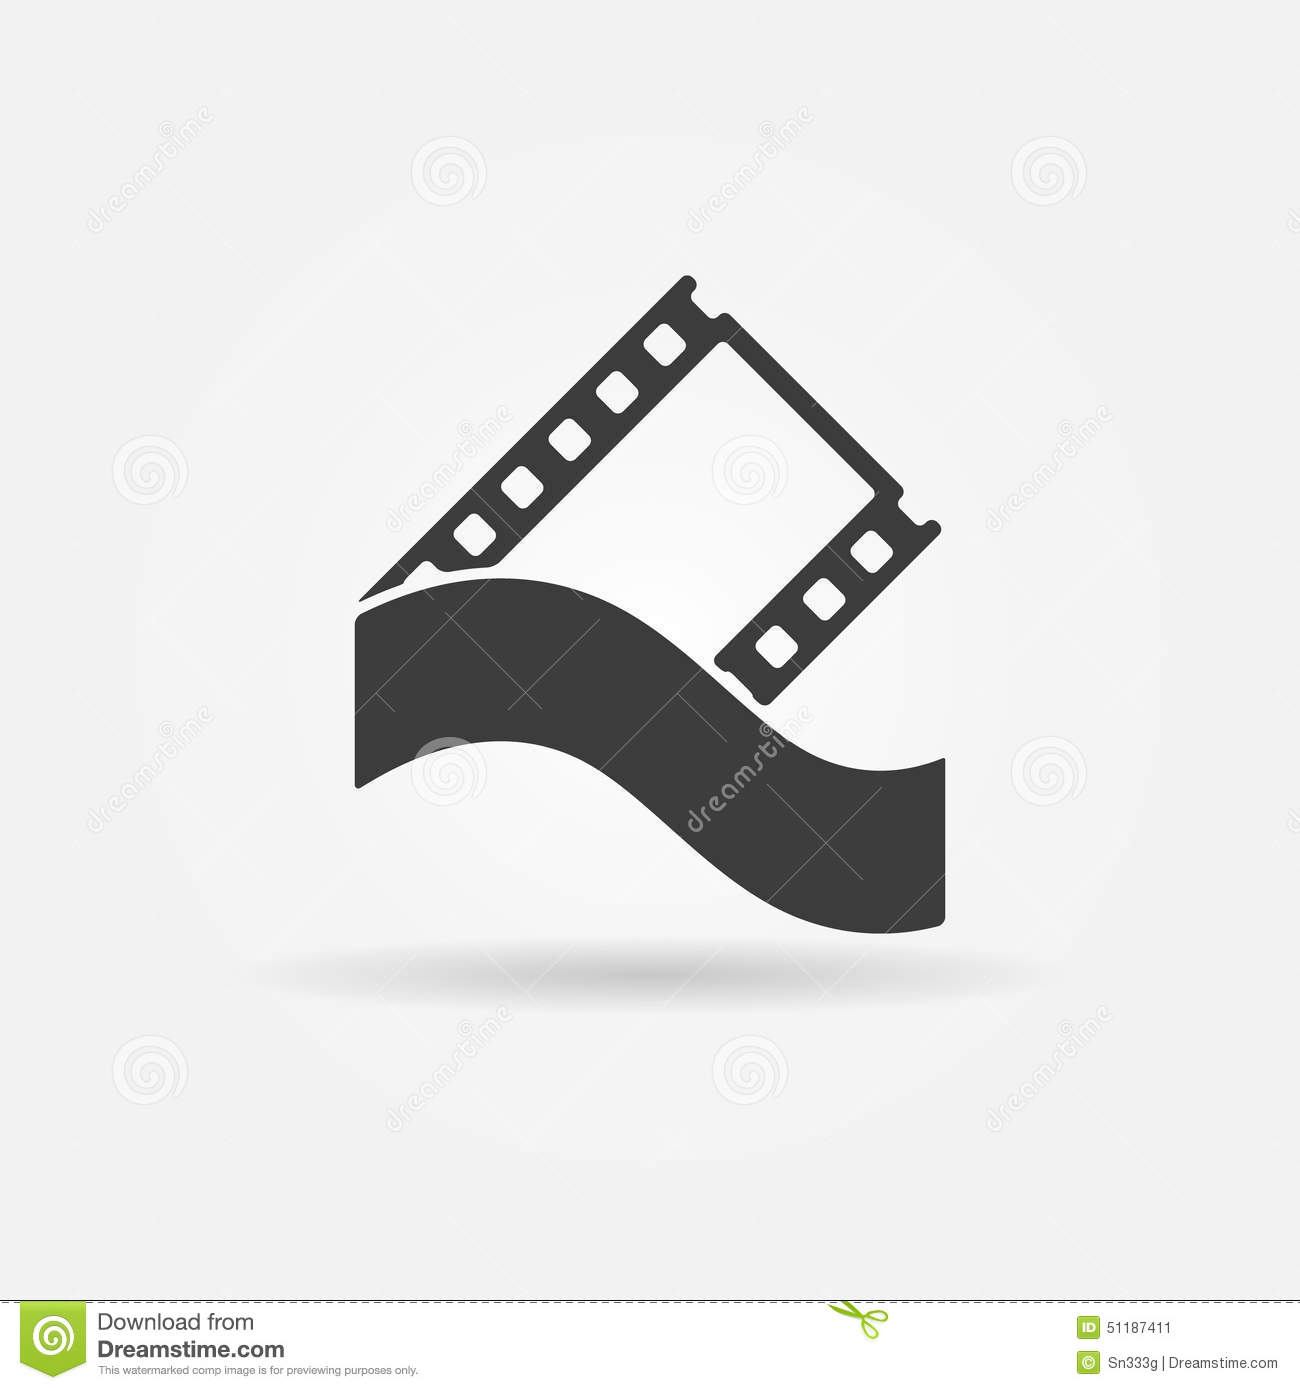 Film Strip Concept Logo Or Icon Stock Vector - Image: 51187411